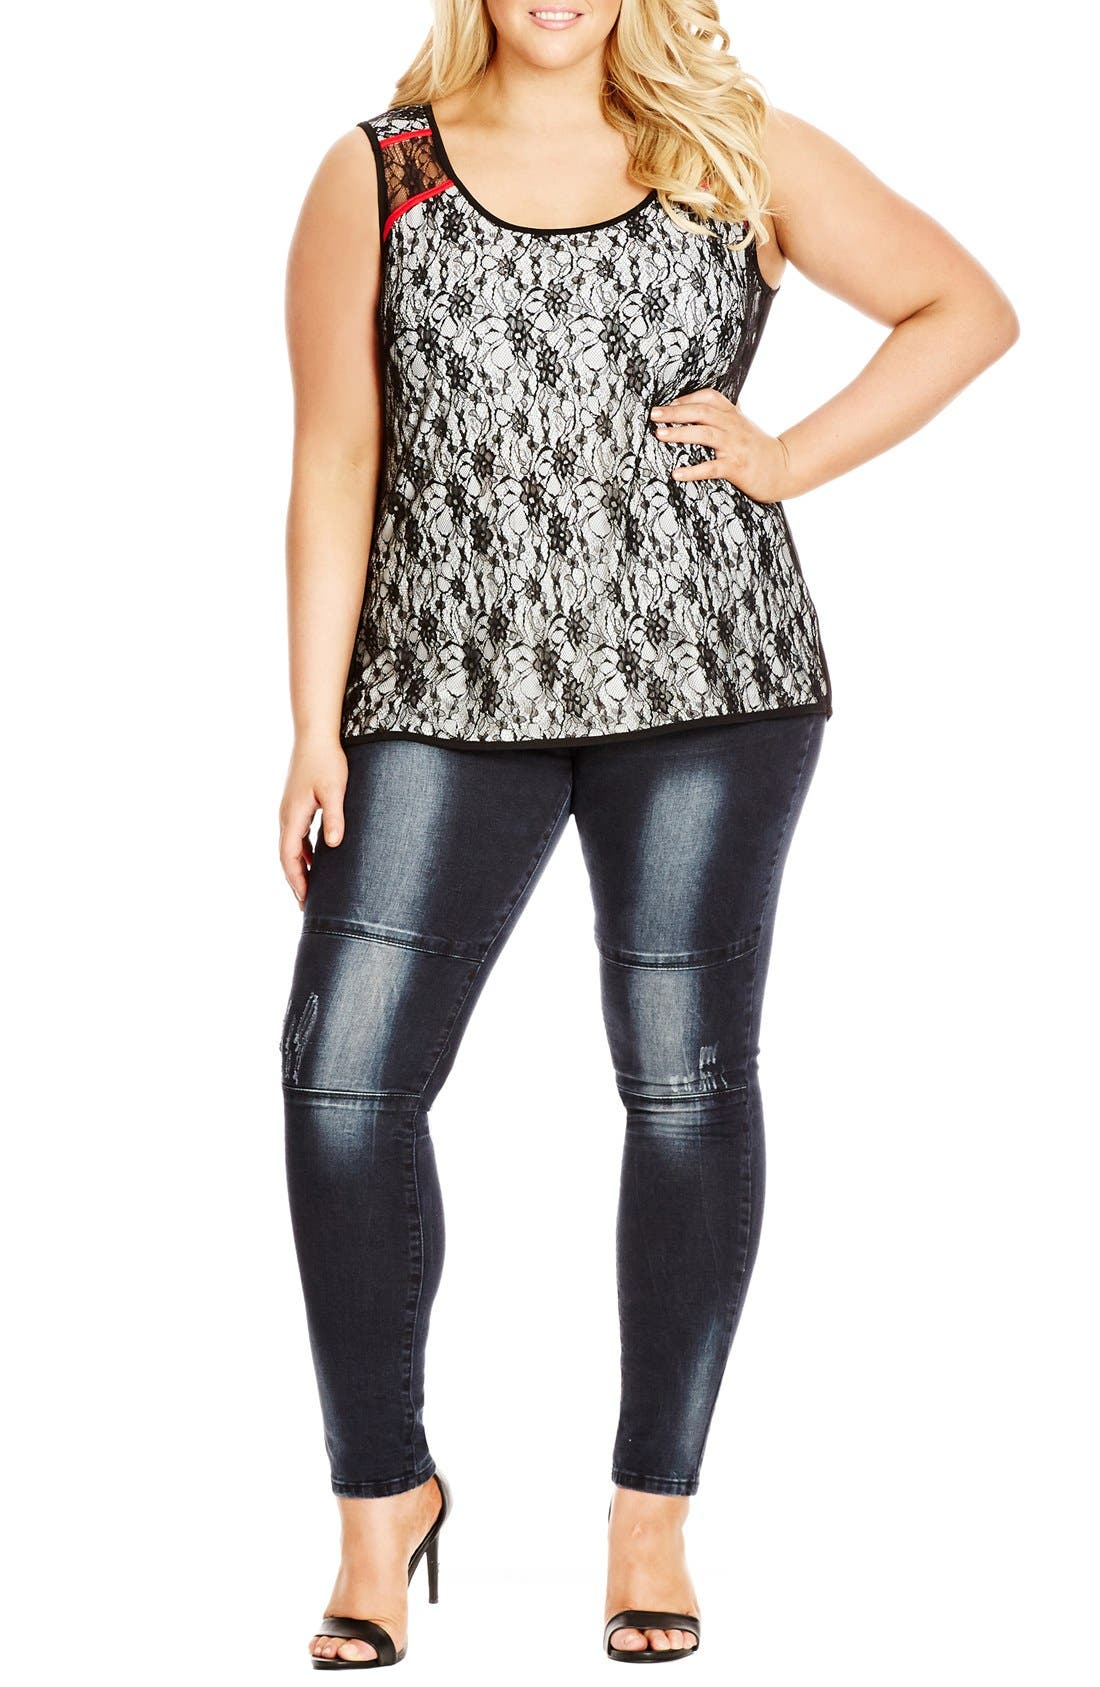 Alternate Image 1 Selected - City Chic Lace Overlay Sleeveless Top (Plus Size)